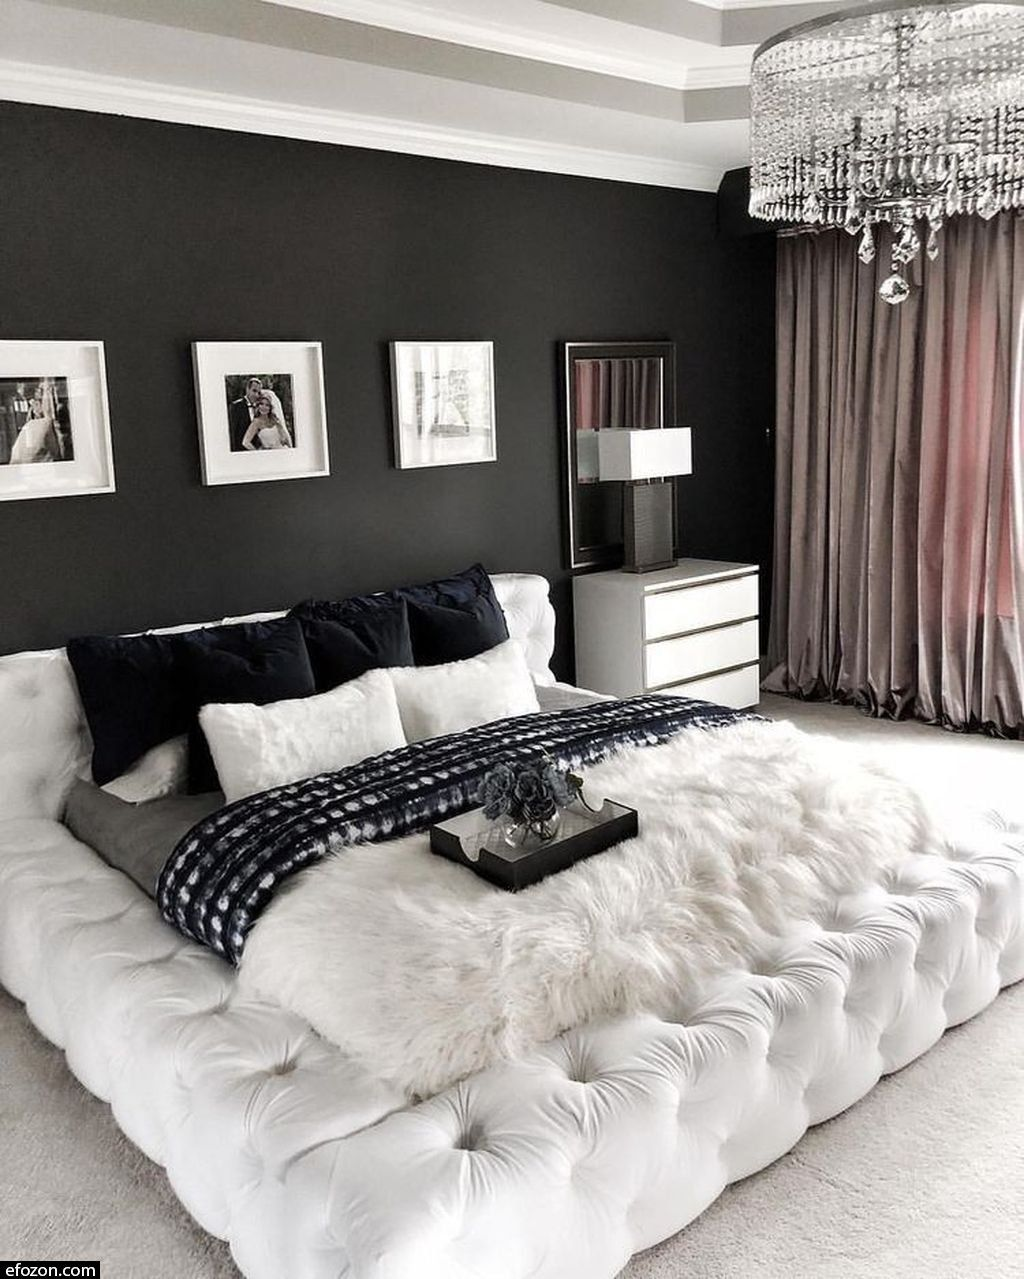 50 Amazing White Bedroom Design In The Small Apartment Image 9 Of 64 Luxurious Bedrooms Glamourous Bedroom White Luxury Bedroom